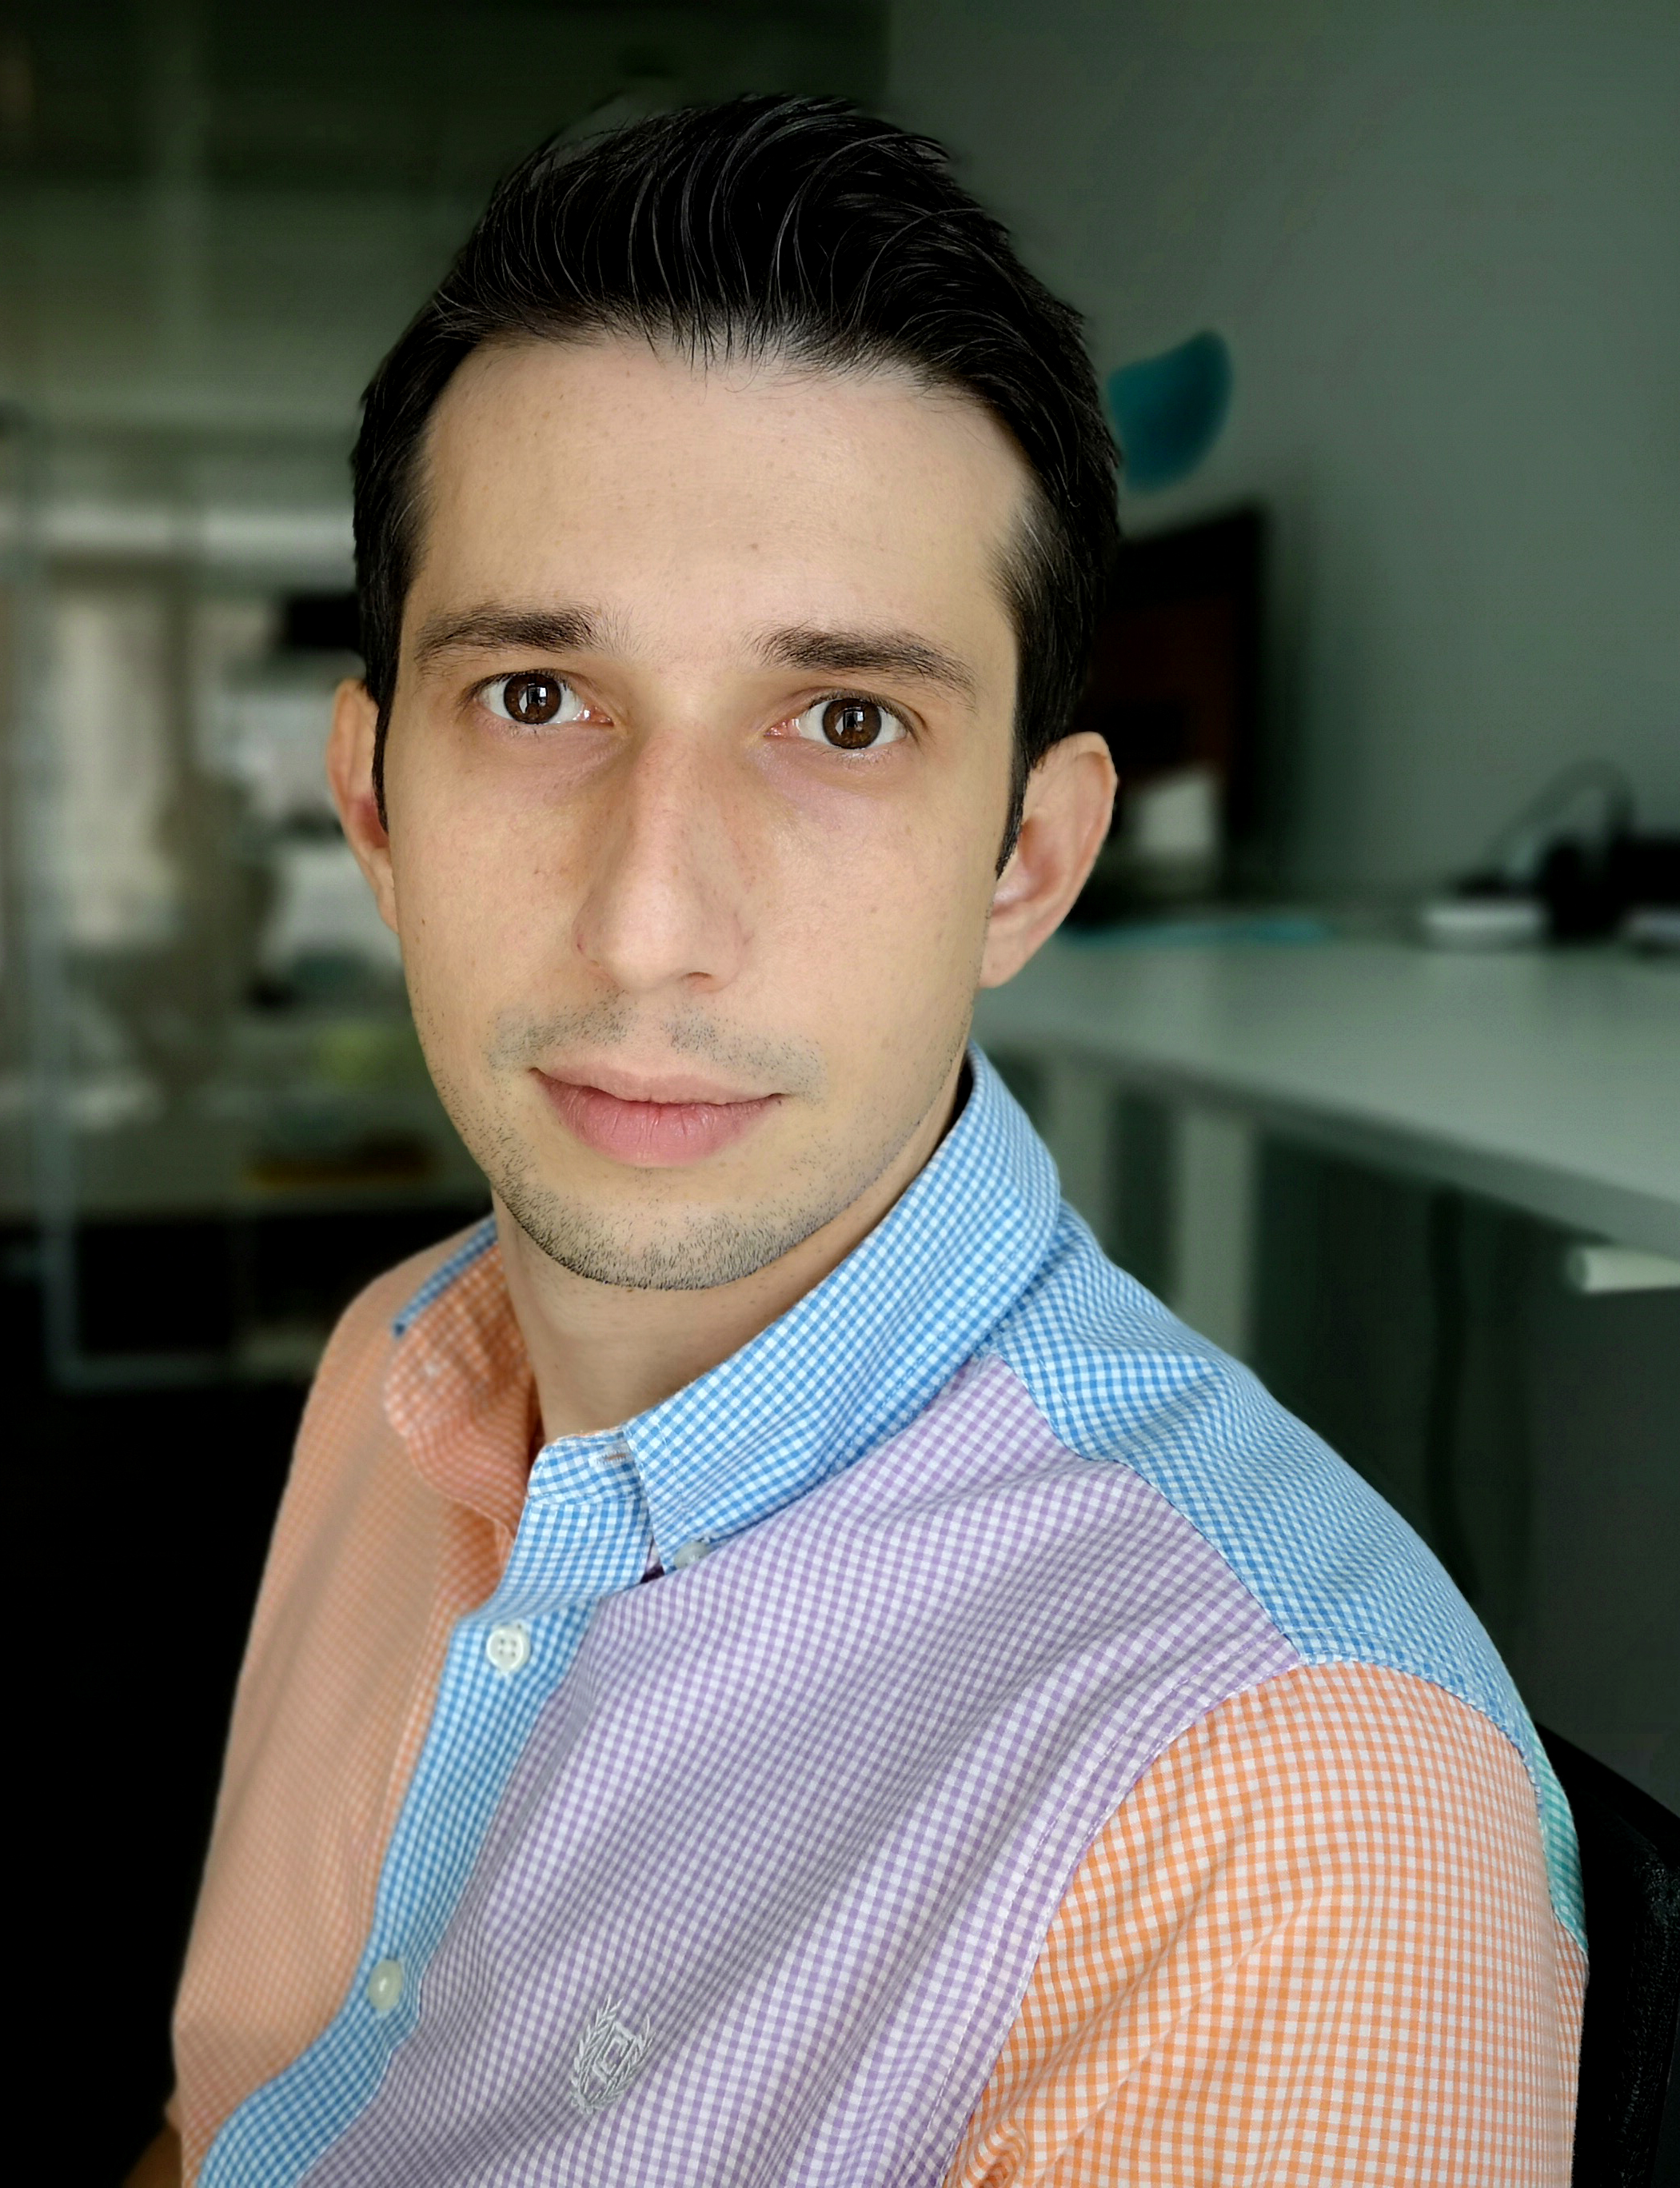 Mihai Olteanu, Engineering Manager - Web Platforms Department, Tremend Software Consulting